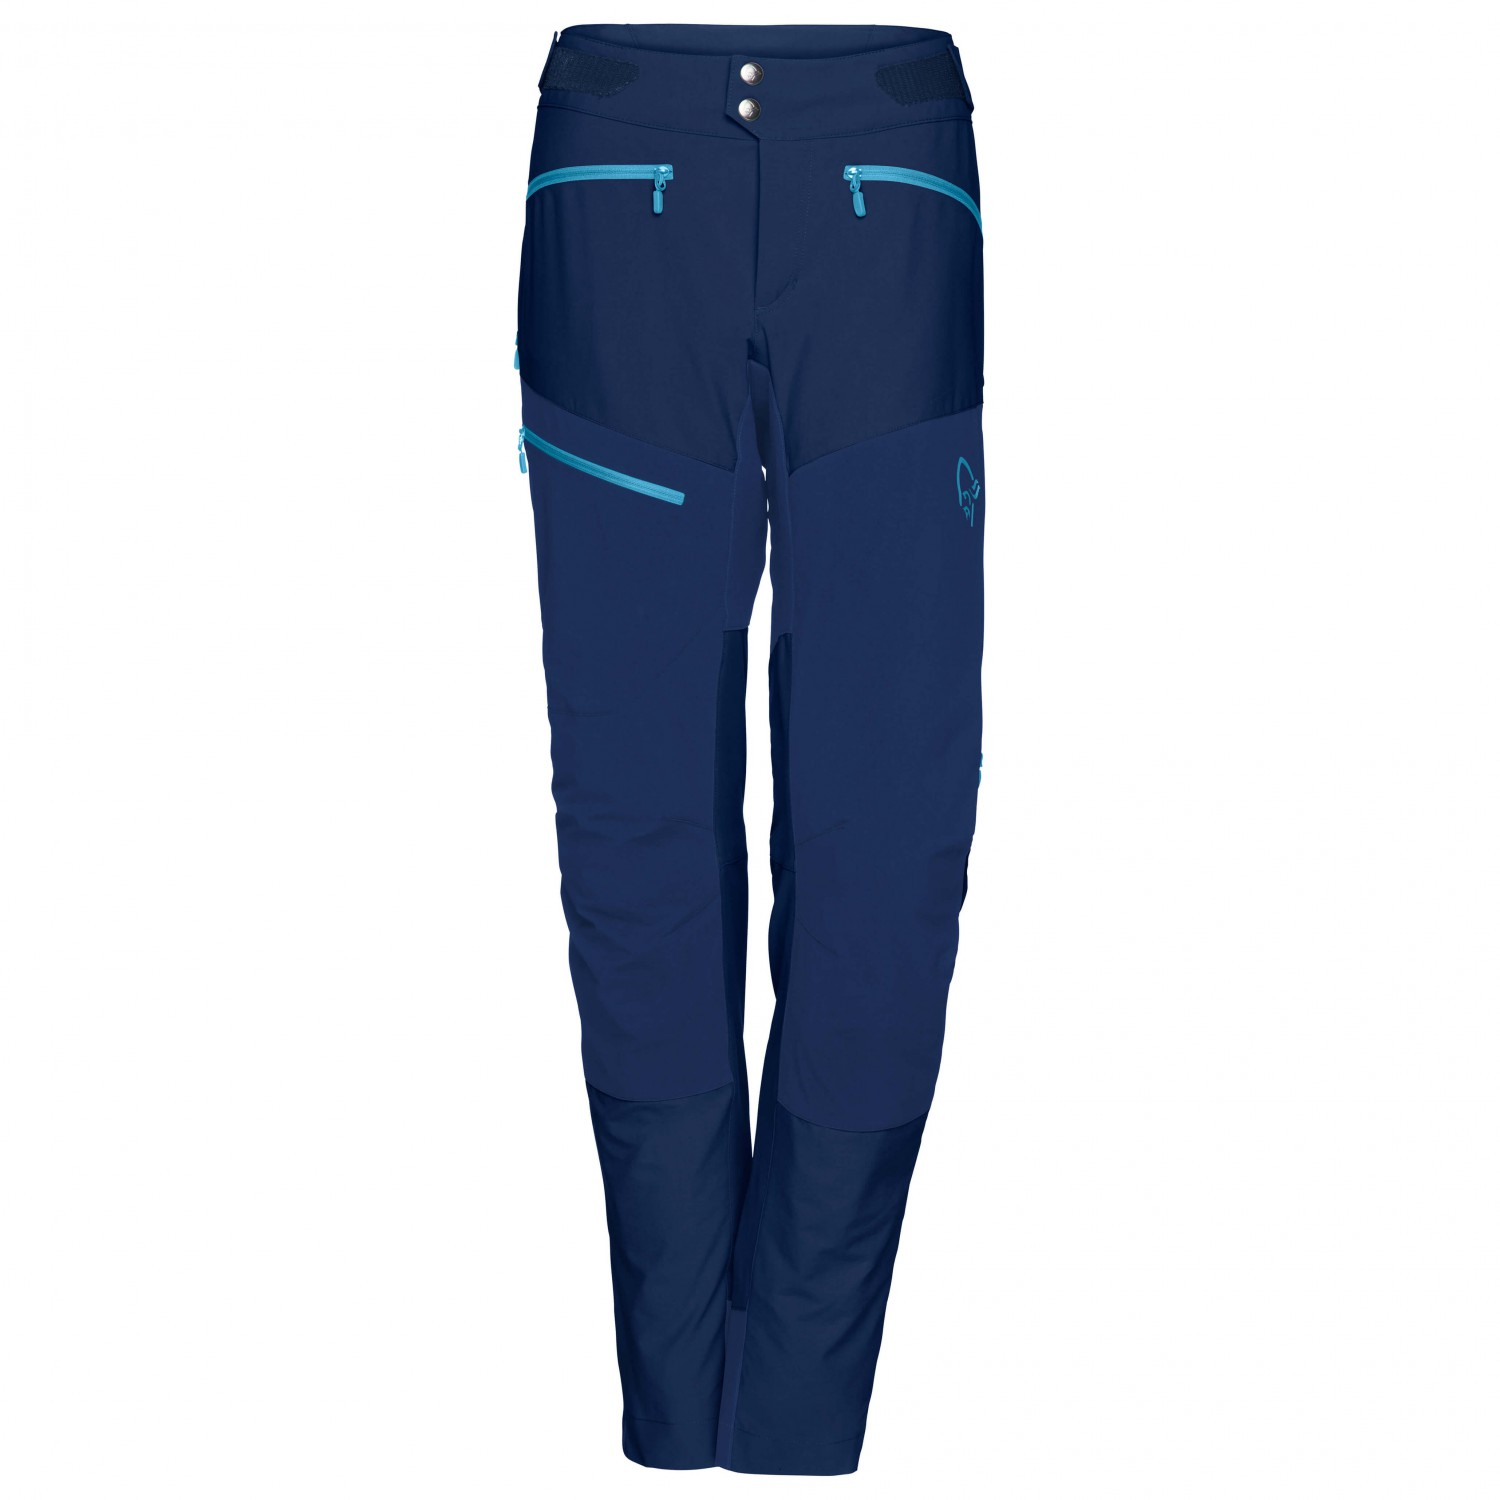 Norrøna Women's Fjørå Flex1 Pants Cycling bottoms Indigo Night | XS